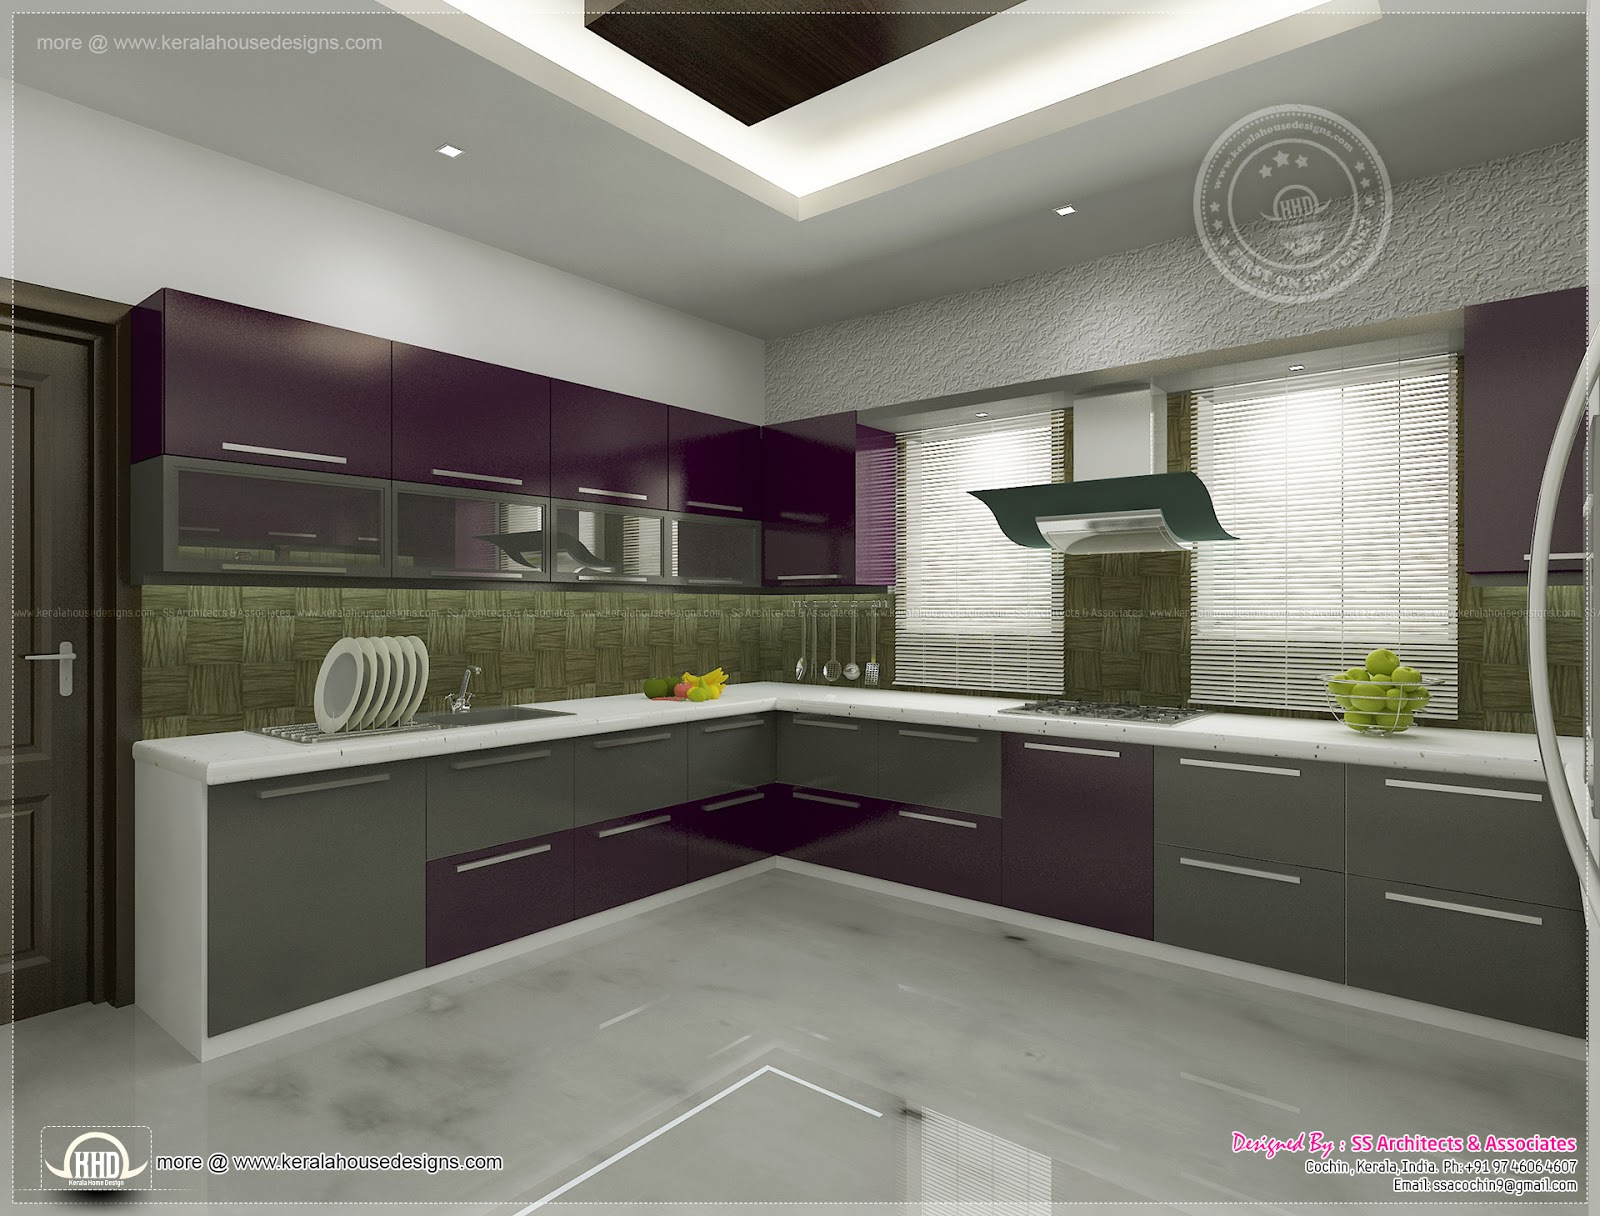 Kitchen interior views by ss architects cochin kerala for Home plans with interior pictures